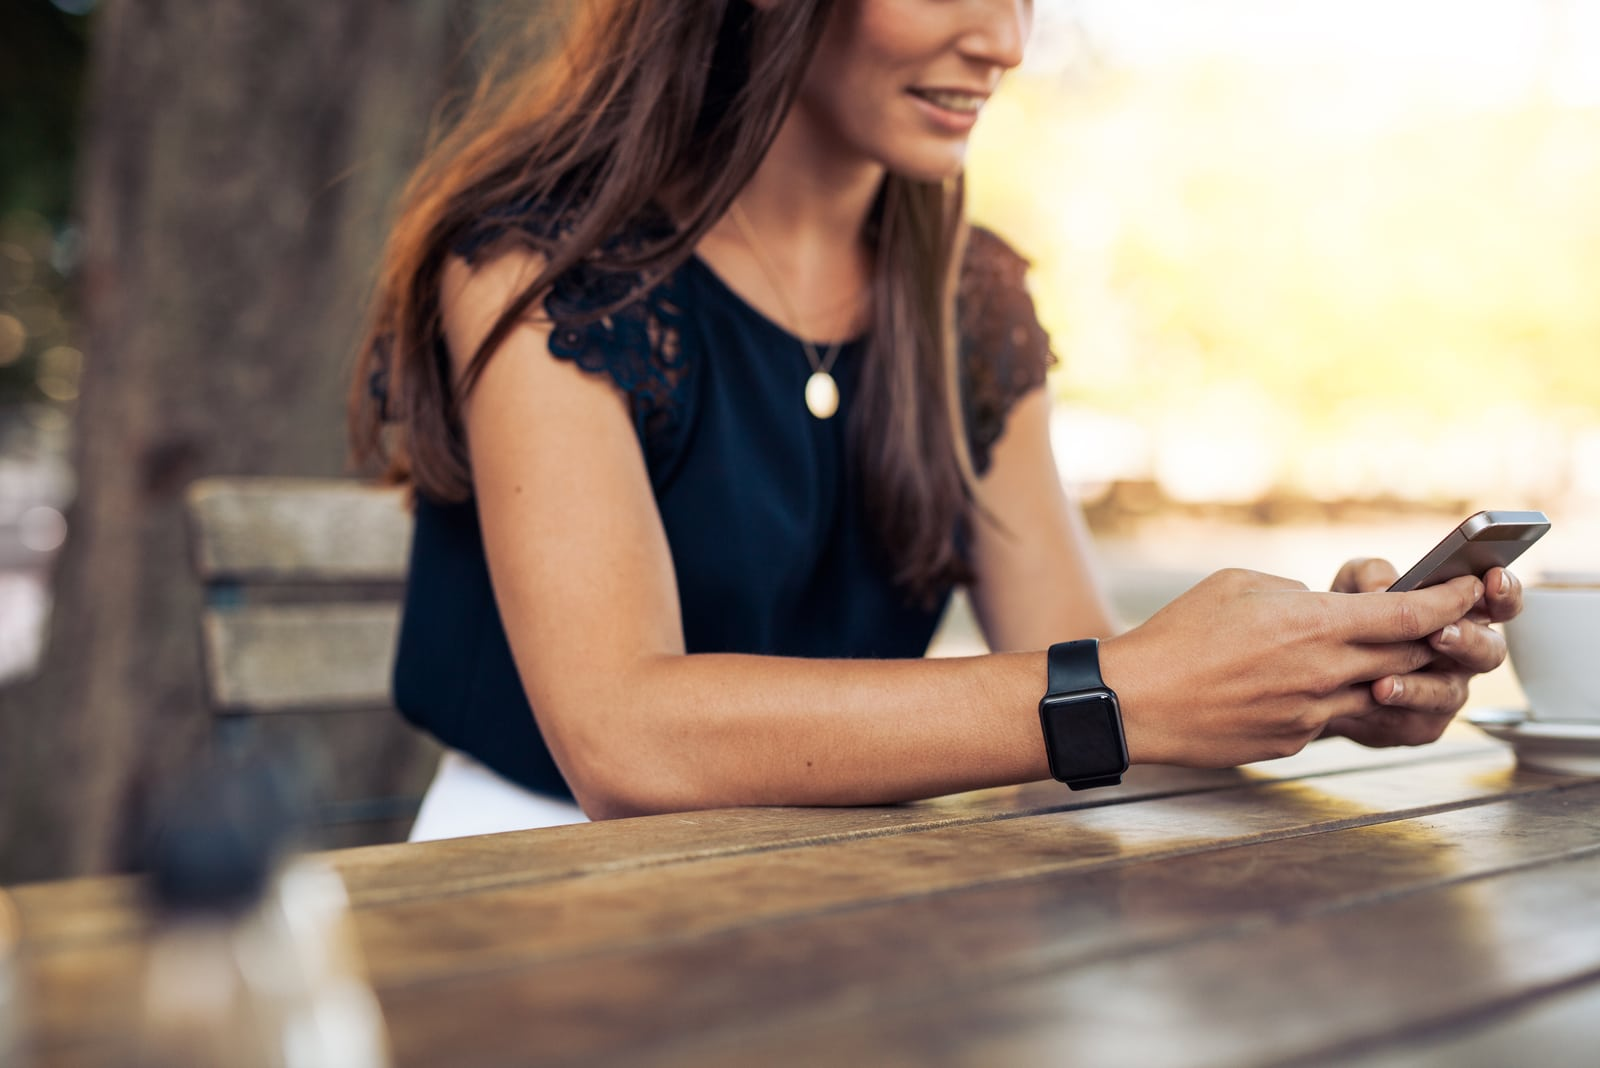 a woman sits at a table and a key on the phone